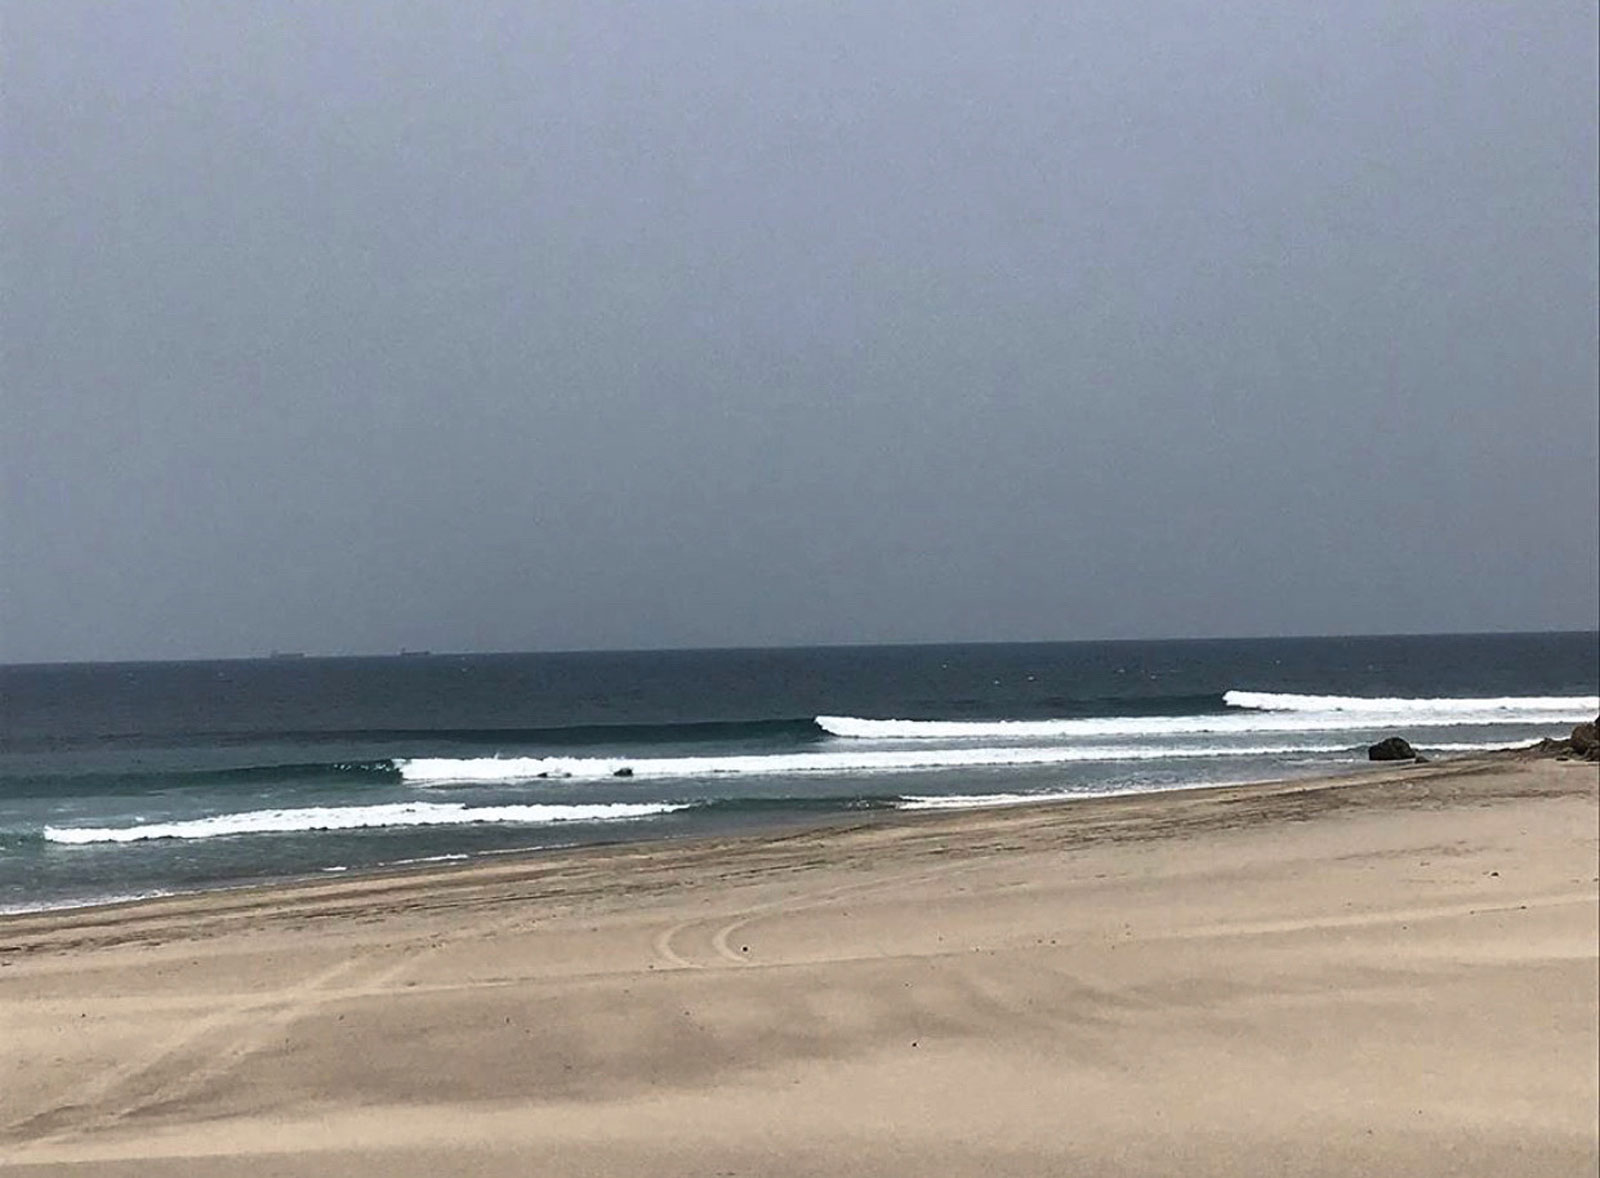 Surfing Salina Cruz, April 2020 - Las Palmeras Surf Camp